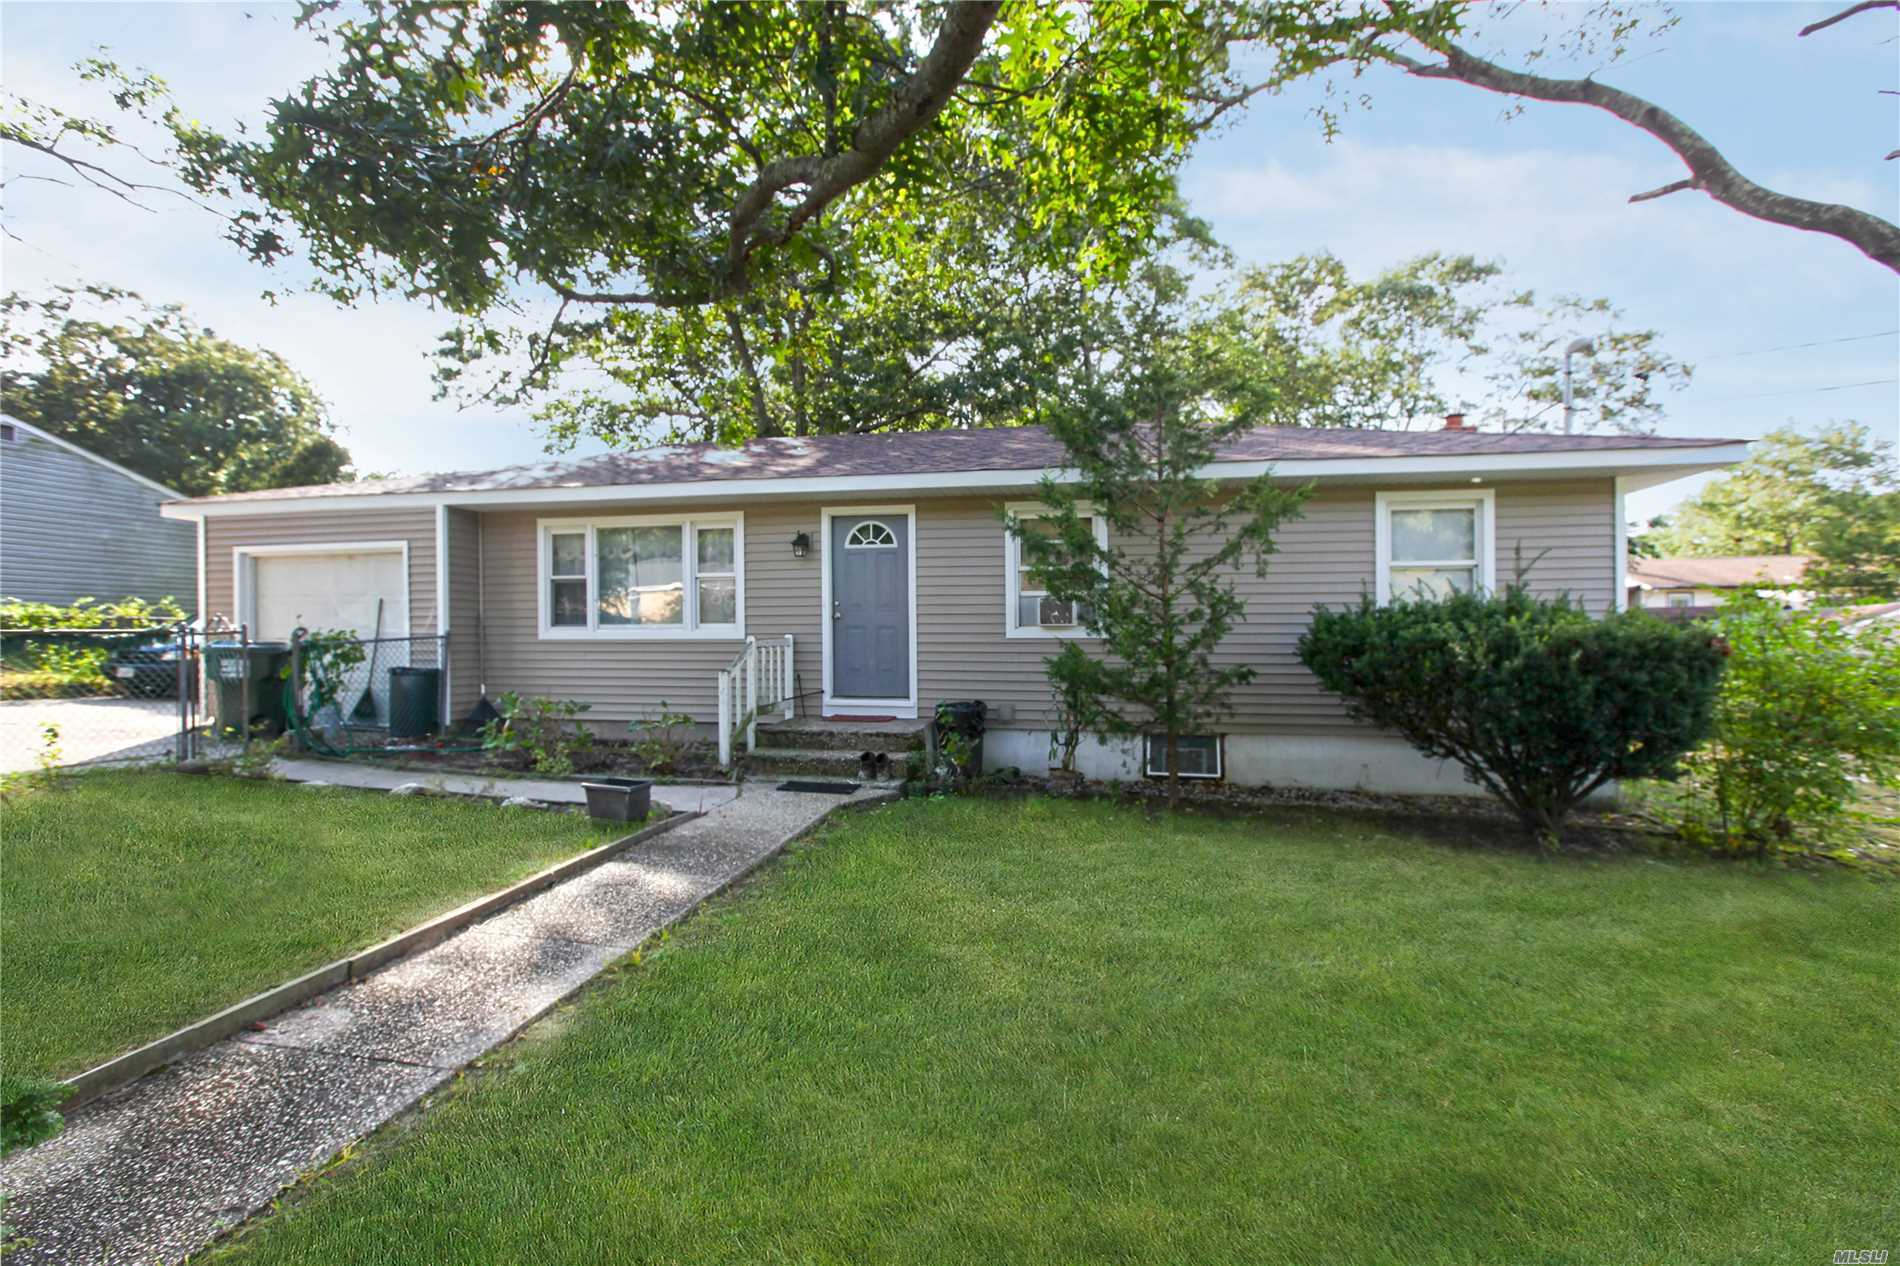 4 Bedroom Ranch With 1-1/2 Baths; Basement Is Finished And Has Additional Full Bath; Brand New Roof (Including New Plywood) And Siding